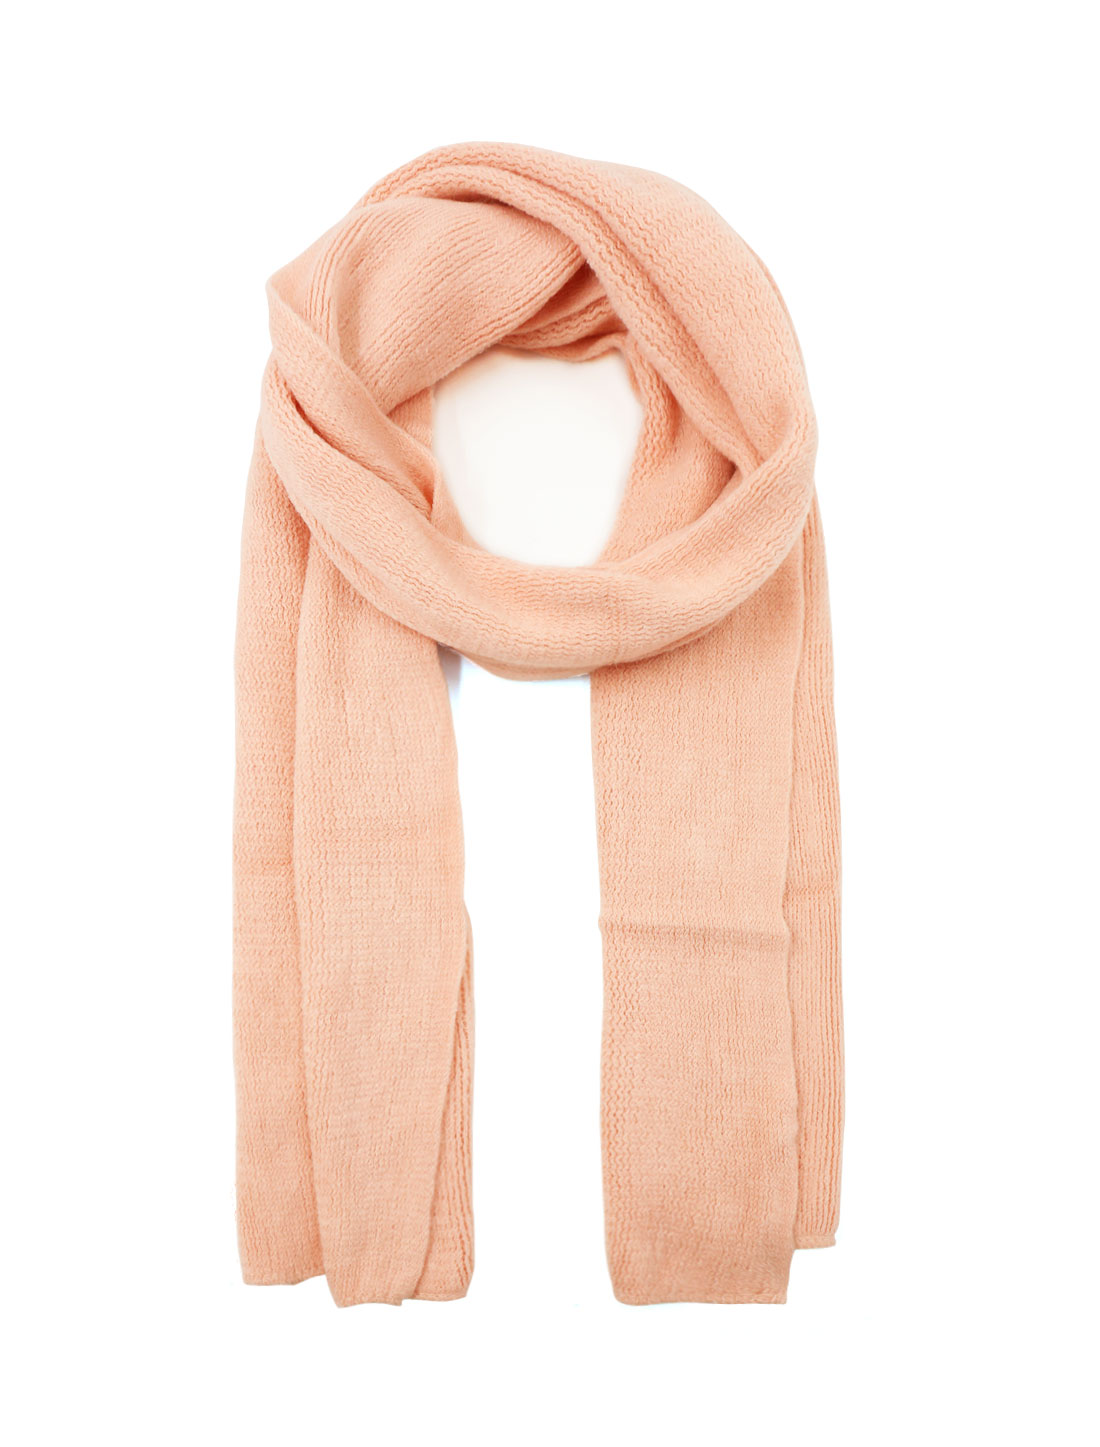 Unisex Rectangle Shape Winter Warm Long Knitted Scarf Salmon